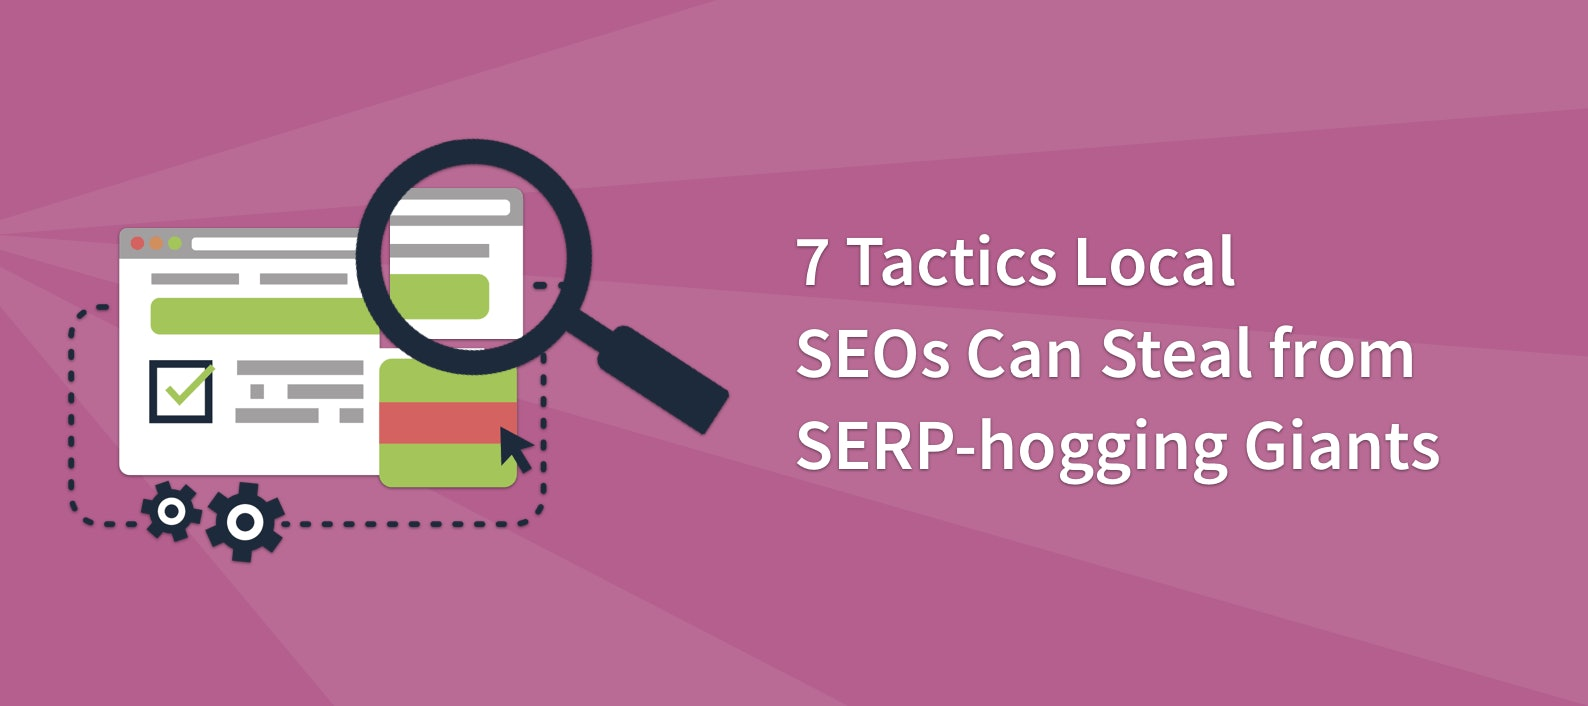 7 Tactics Local SEOs Can Steal from SERP-hogging Giants